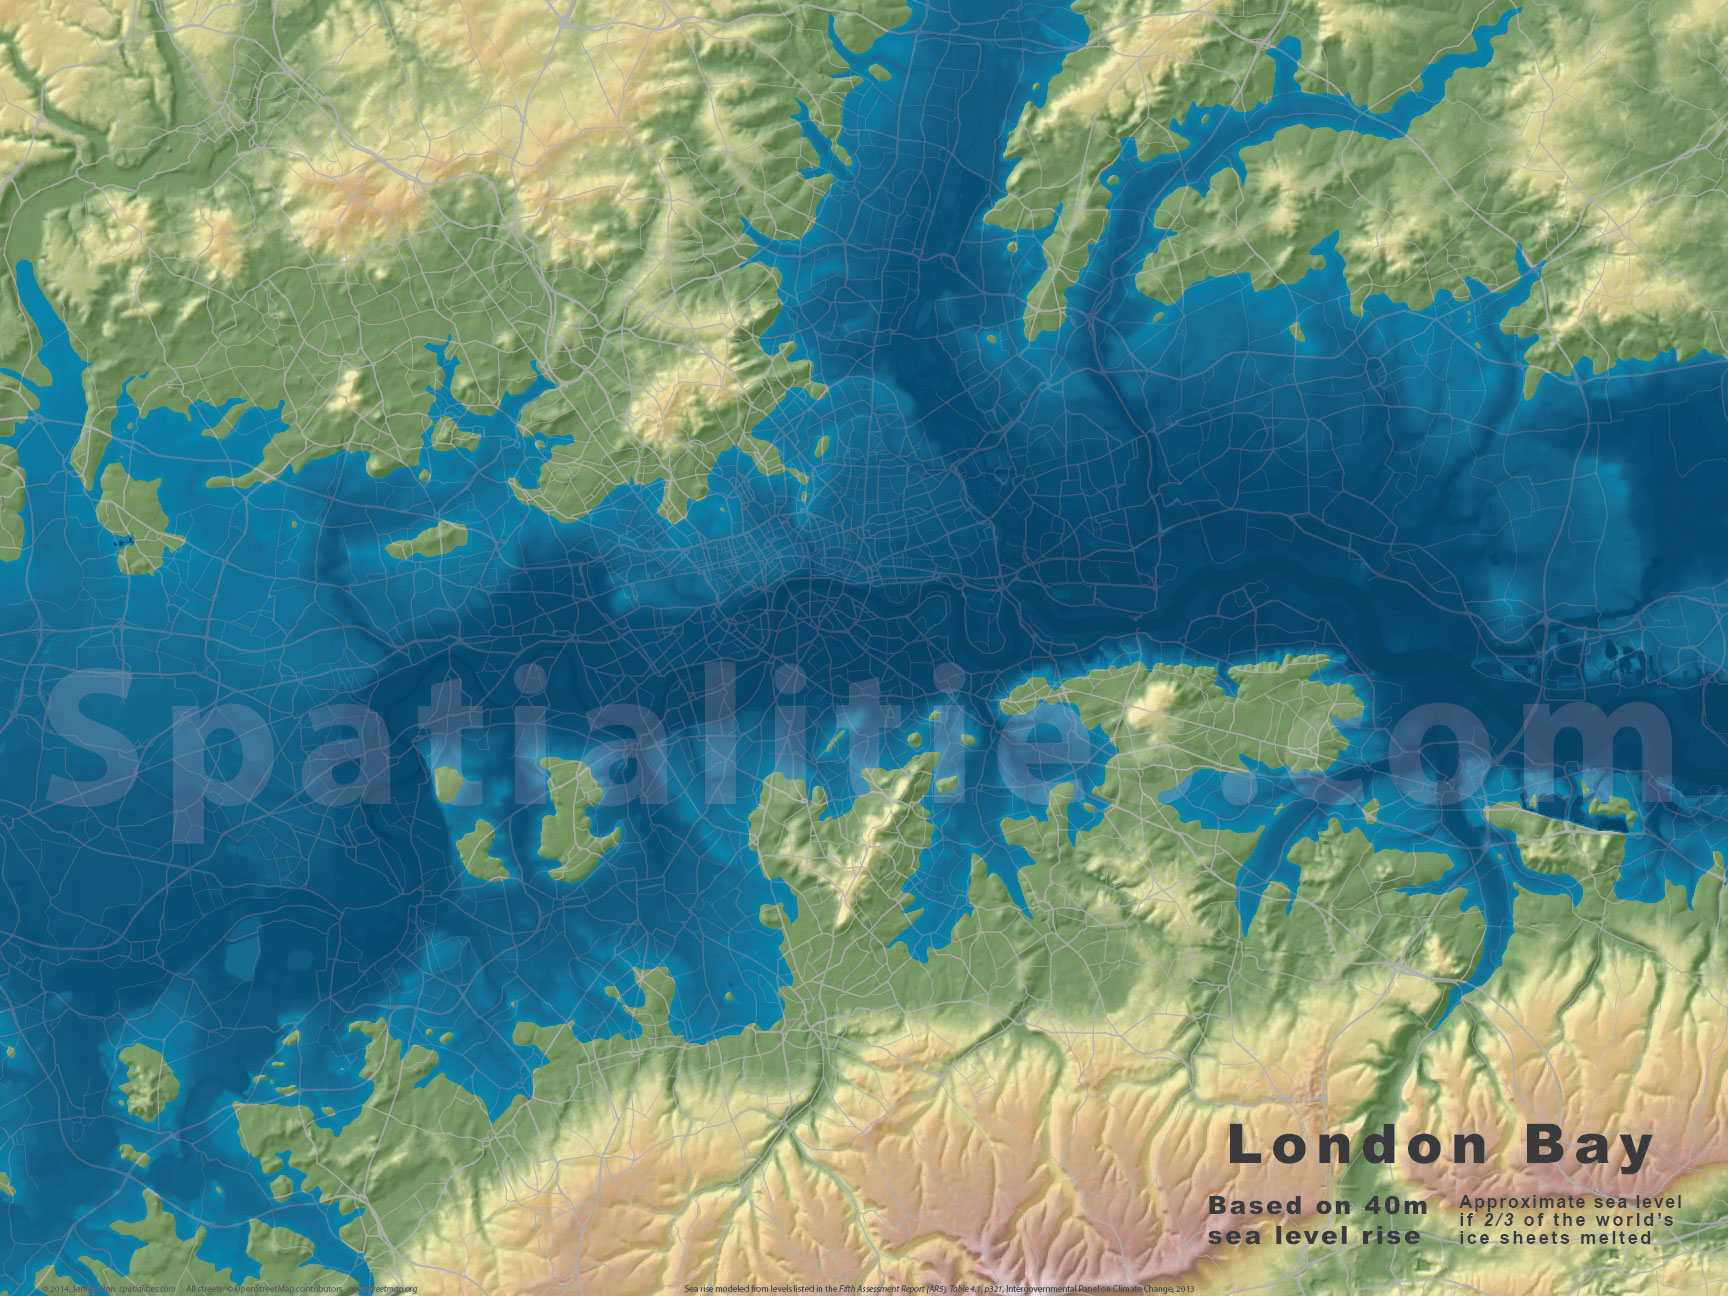 Sea Level Rise Maps Spatialities - Rising oceans map